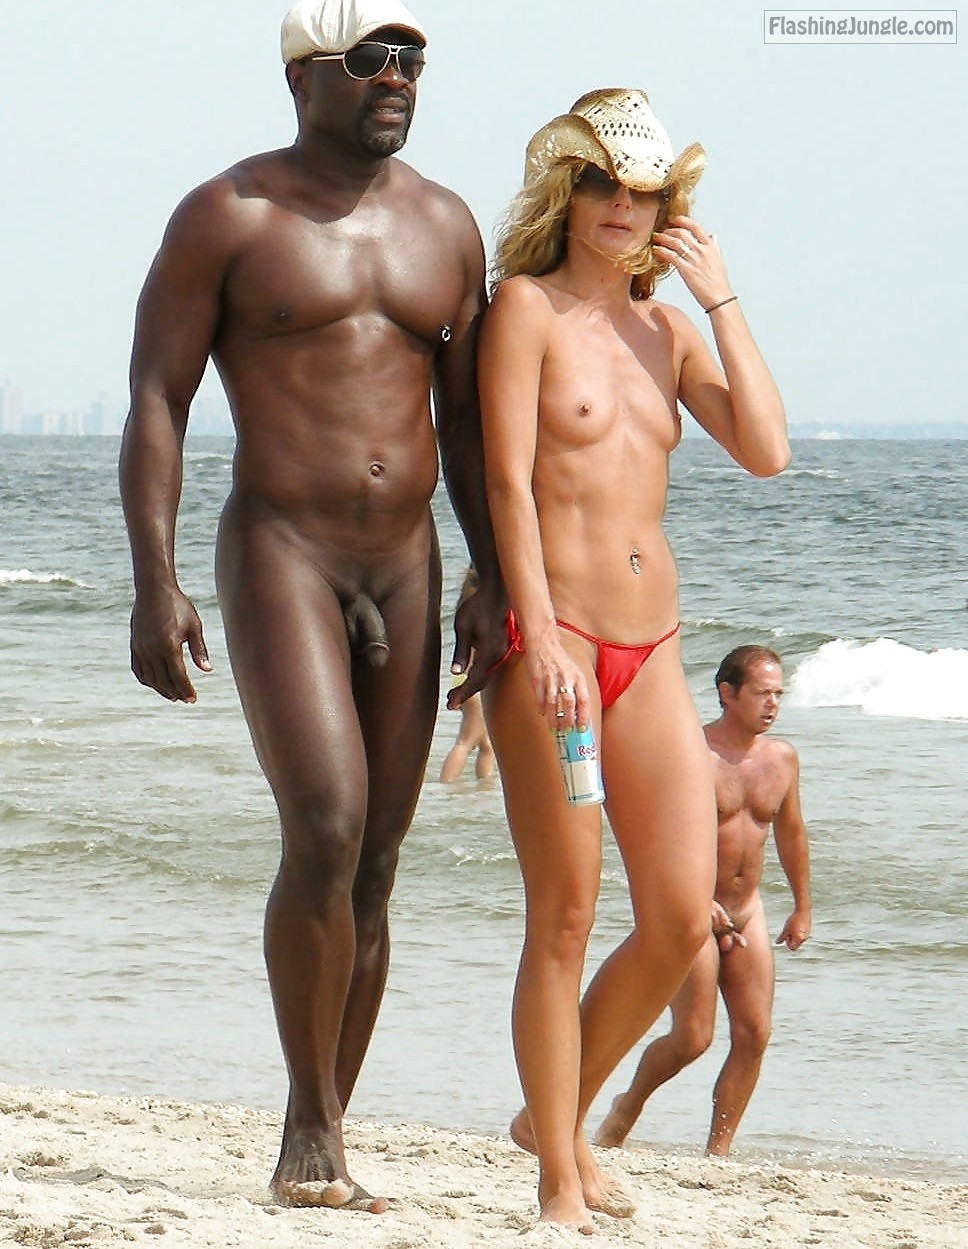 Naked Black Guy And Topless Blonde Nude Beach Pics, Voyeur -5081